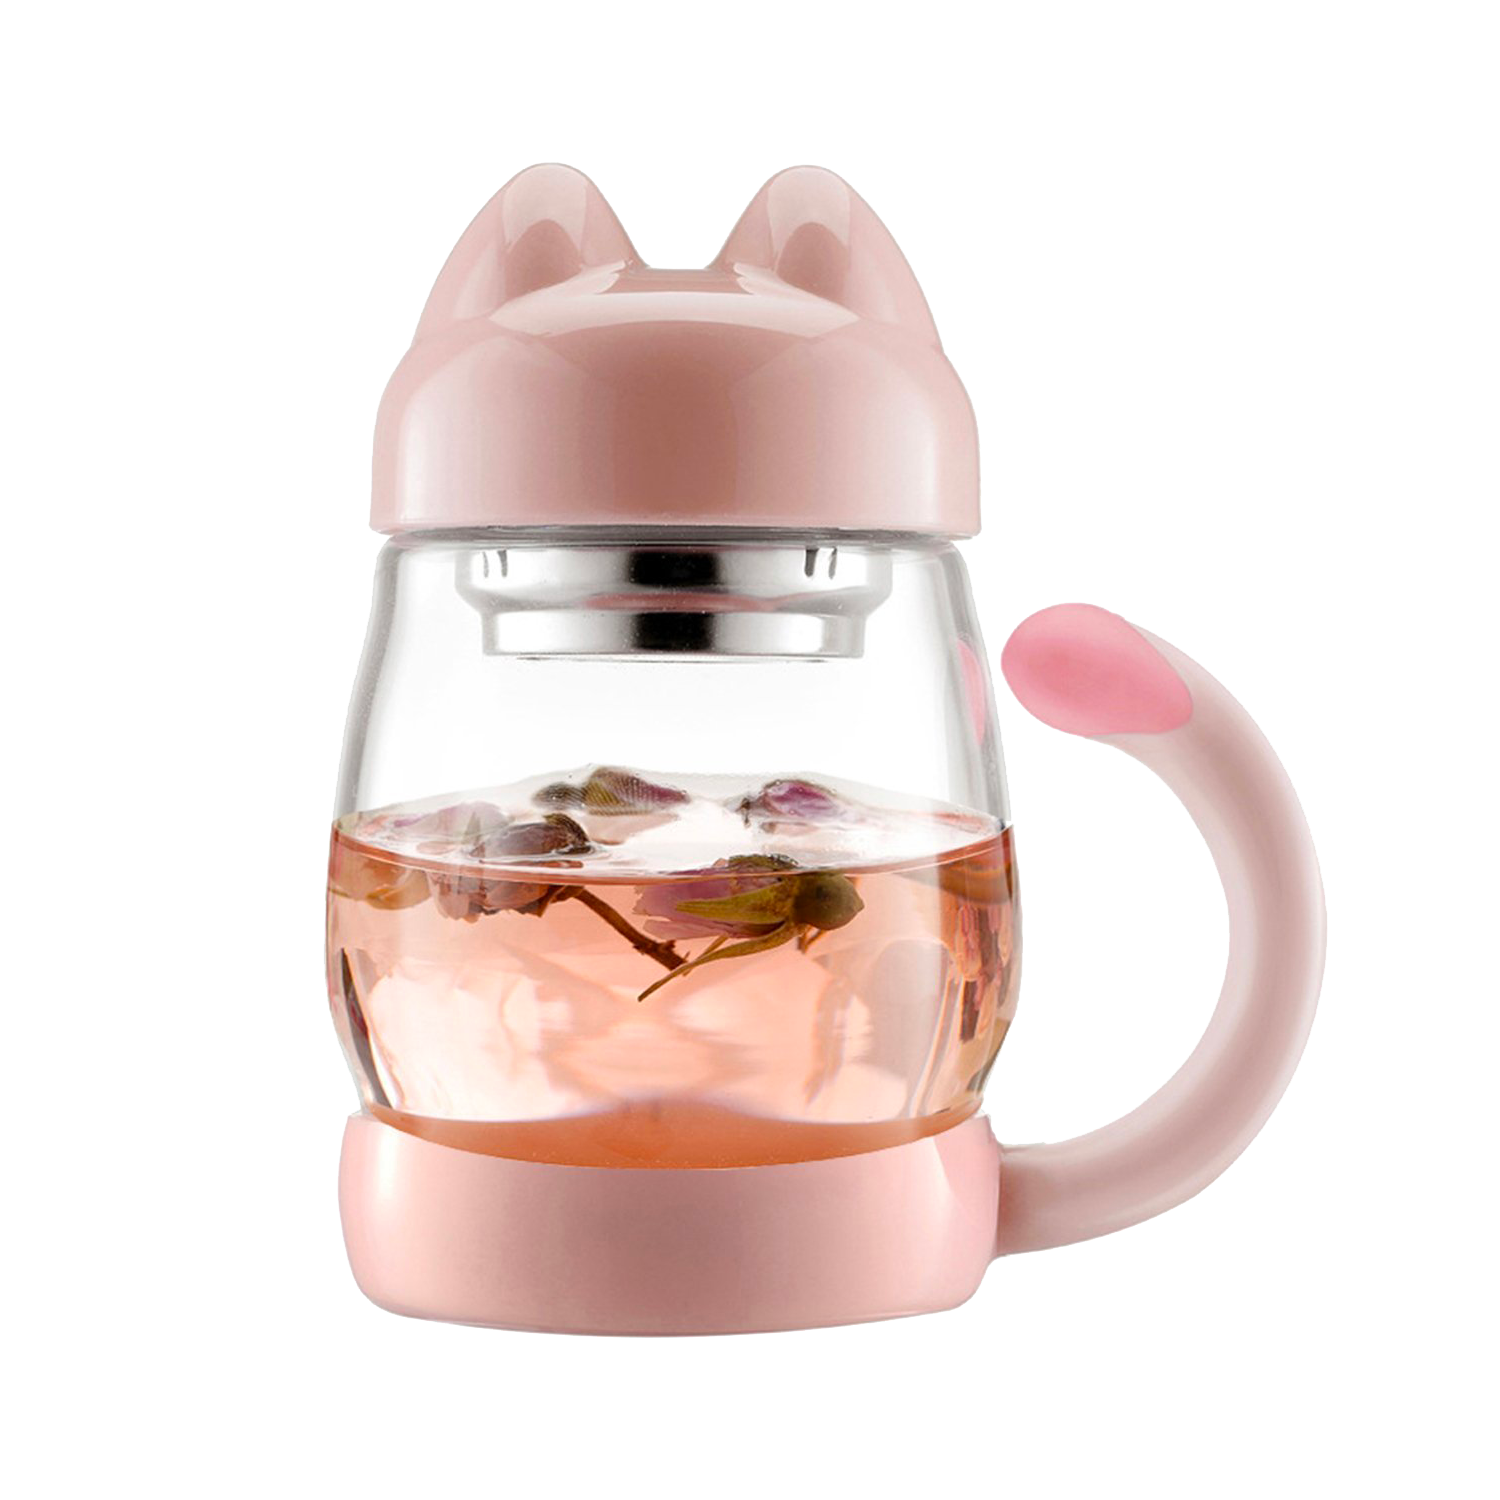 Teaow™ - Portable Tea Infuser - Bahia Investments